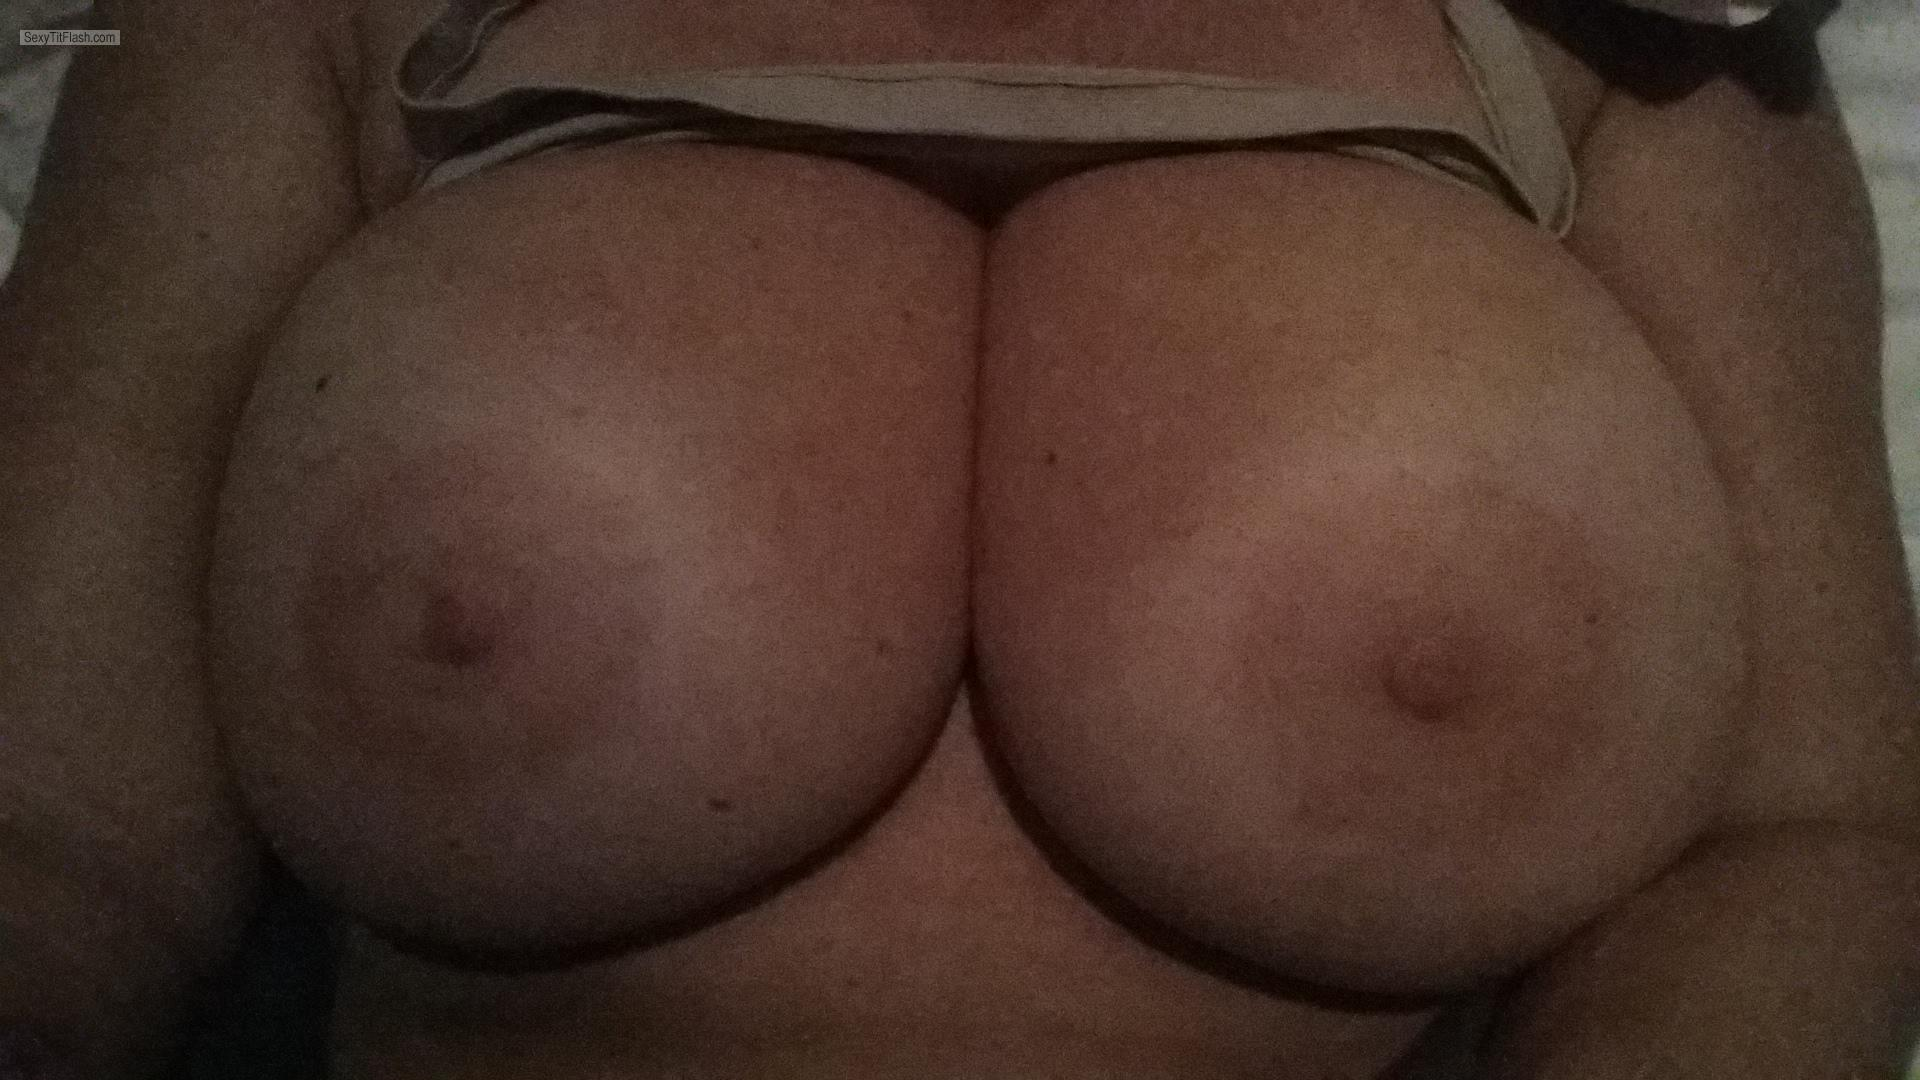 Tex nice tits and big nips 1